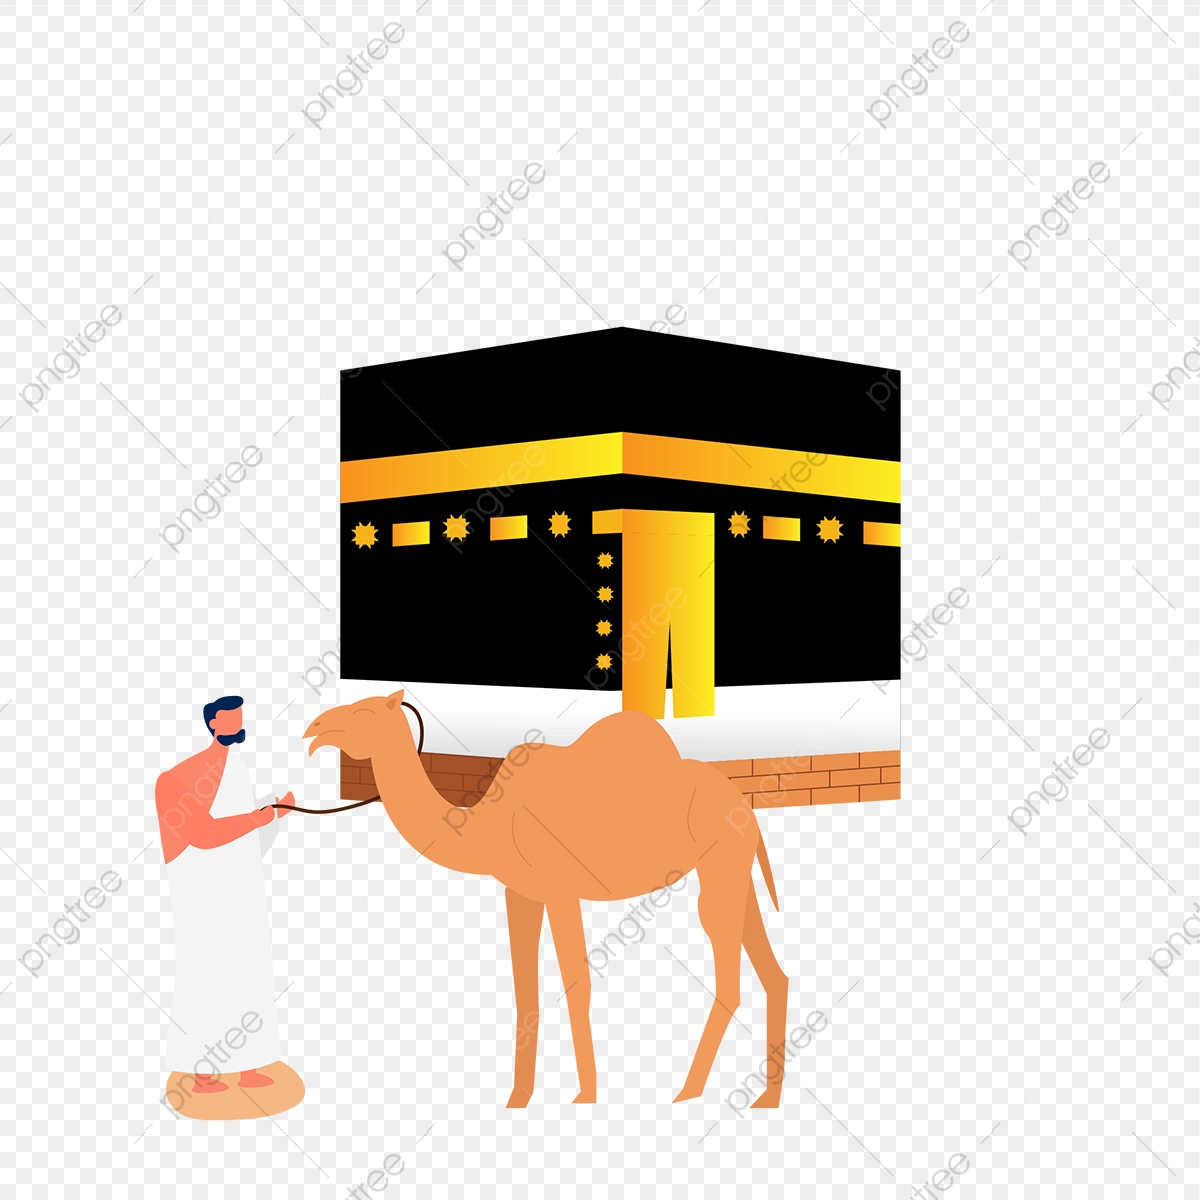 kabah png images vector and psd files free download on pngtree https pngtree com freepng beautifull mekkah kaabah building with haji people and camel animal 4869698 html